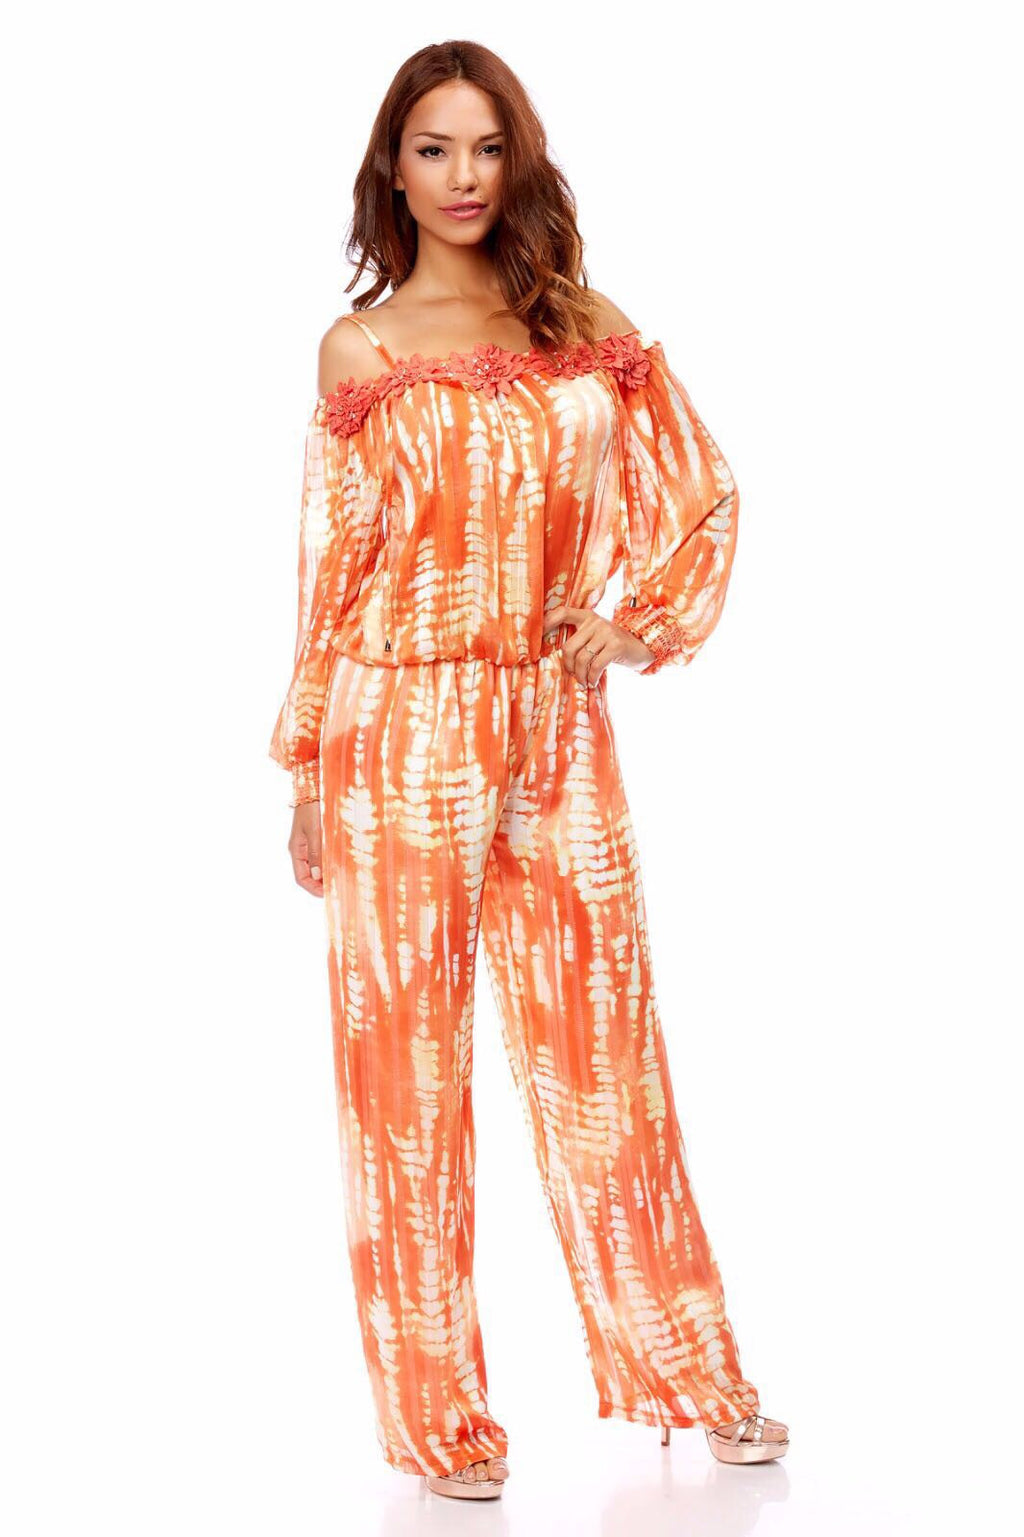 MIMI FLOWERS Orange Jumpsuit